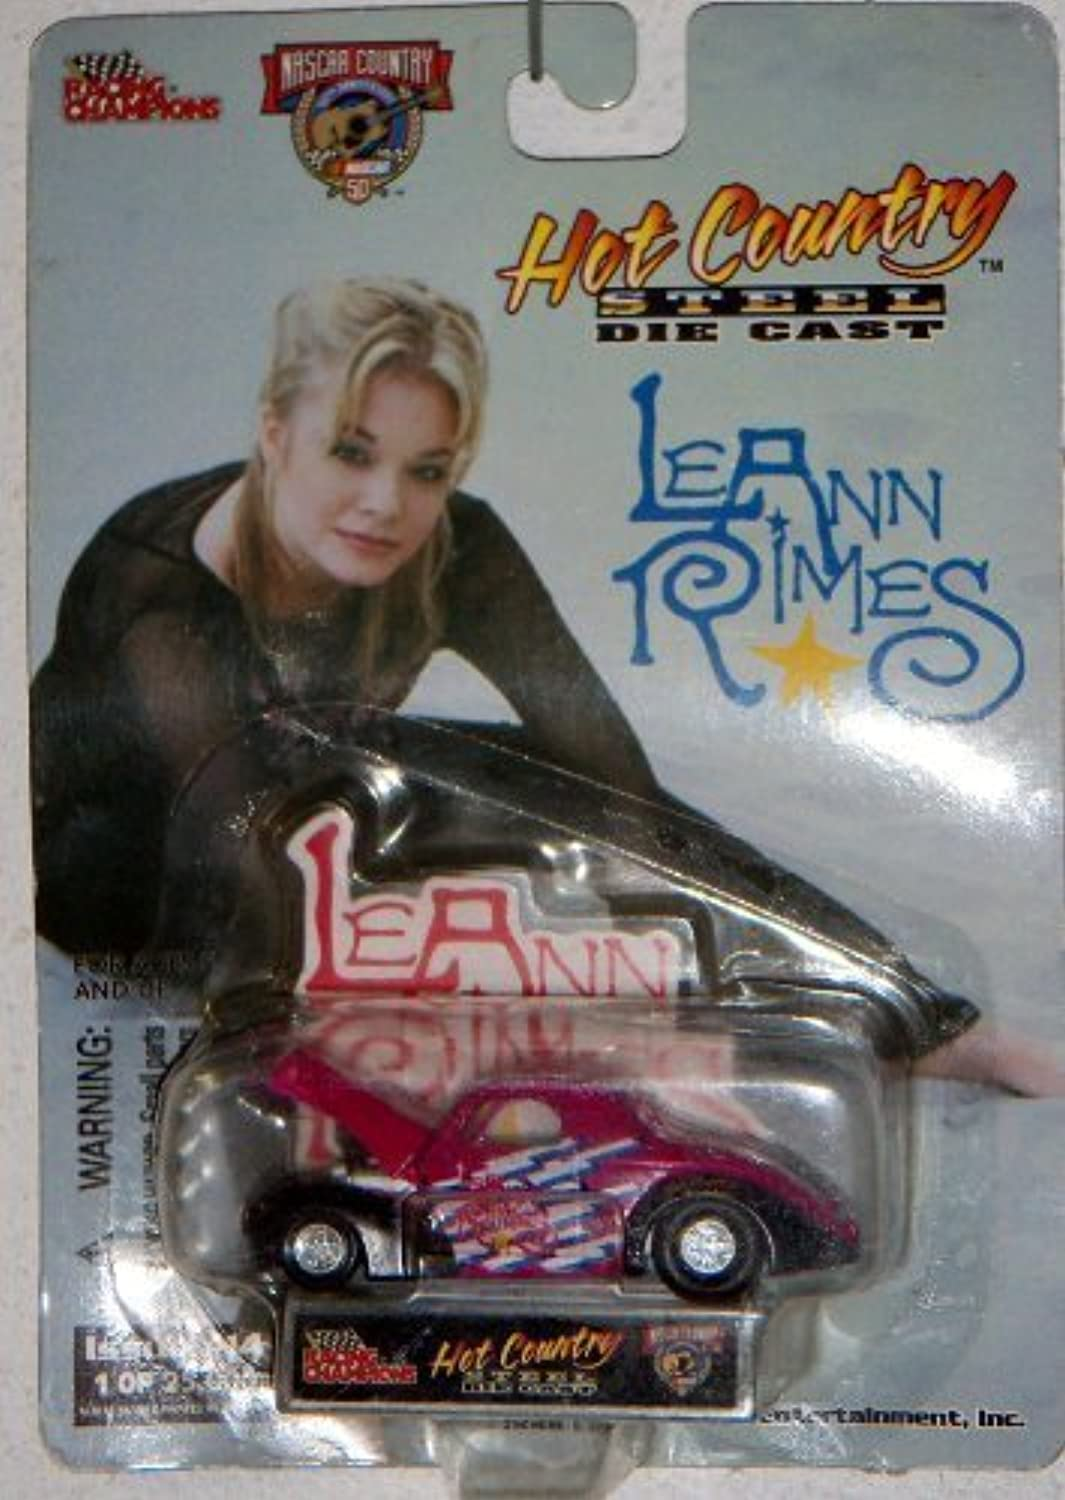 1998 Hot Country Steel Die Cast Car featuring LeAnn Rimes Pink '41 Willys  14 1 of 25,000 NASCAR 50th Anniversary Racing Champions Signatures Superstars by Hot Country Steel Die Cast